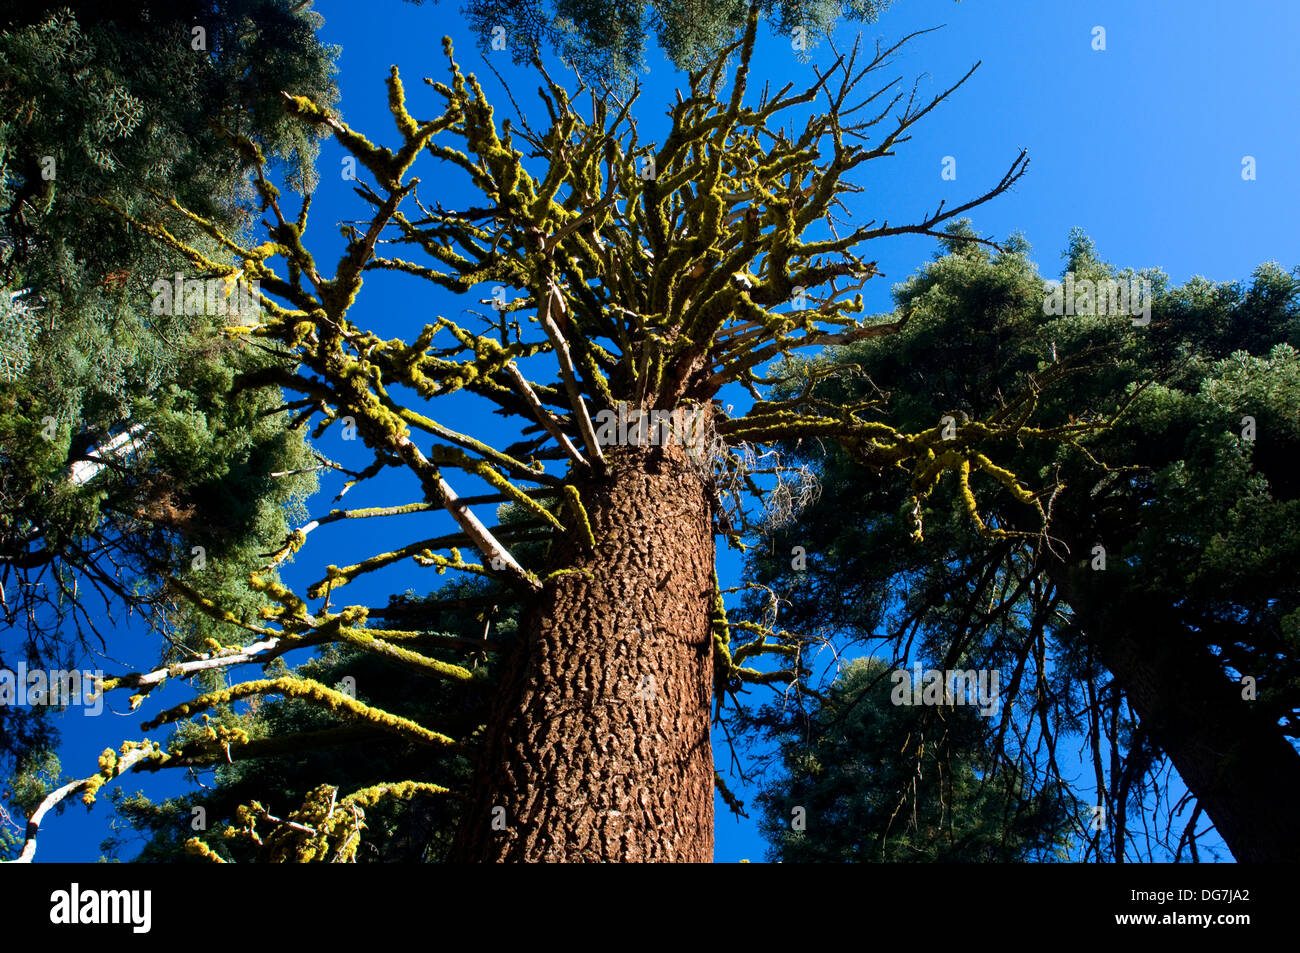 Shasta red fir snag from Park Ridge Trail, Kings Canyon National Park, California - Stock Image